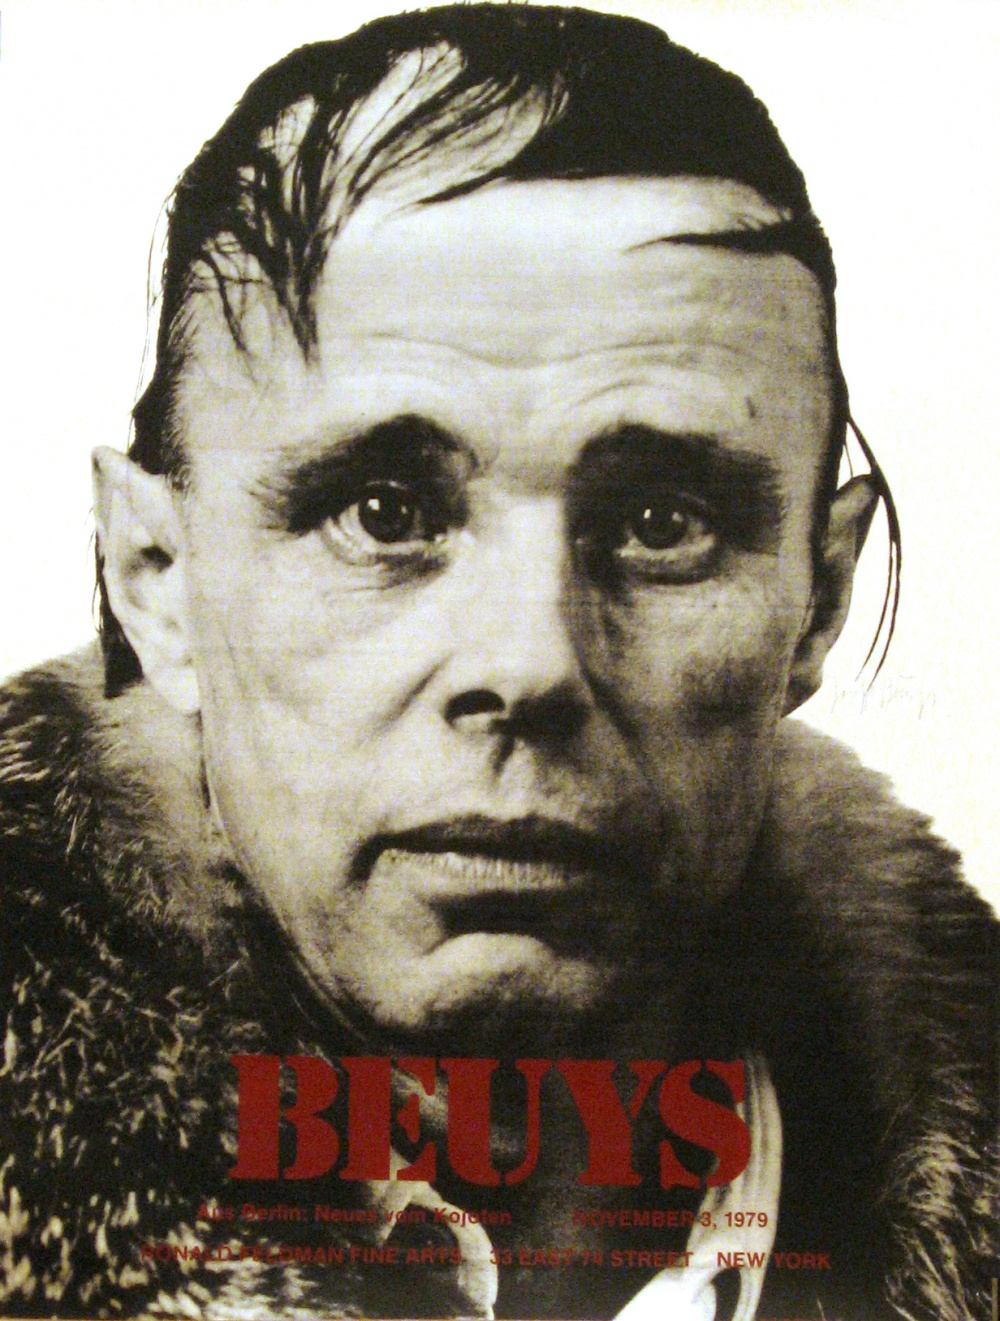 Joseph Beuys - signed poster